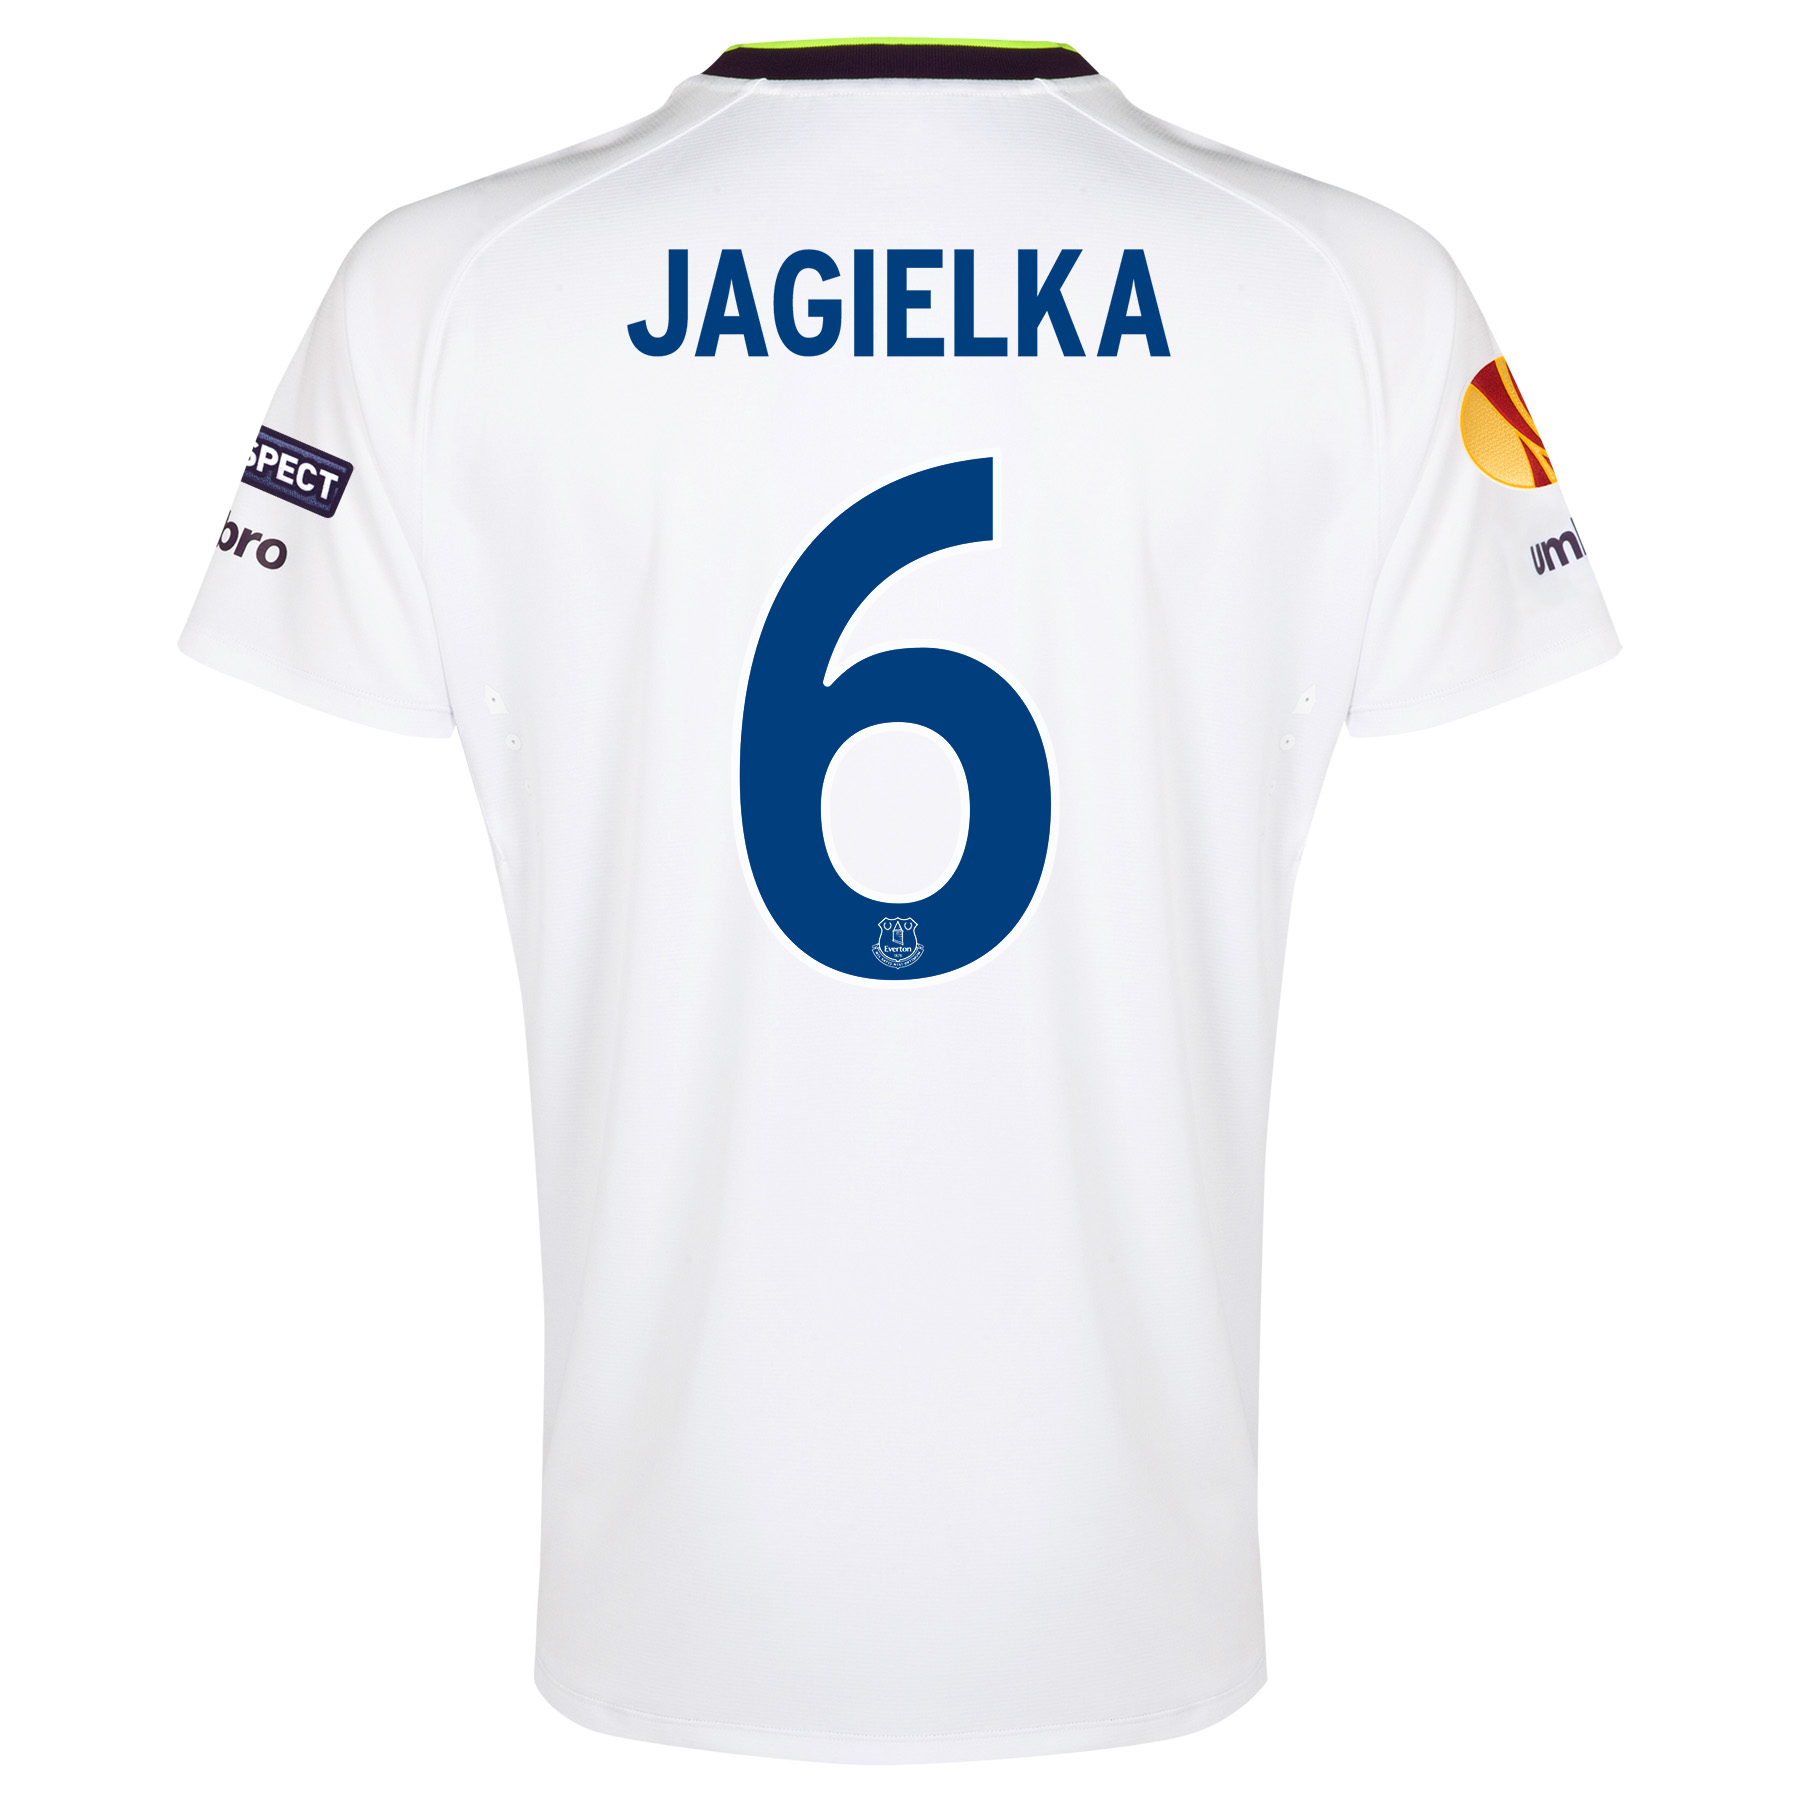 Everton UEFA Europa League 3rd Shirt 2014/15 - Junior with Jagielka 6 printing